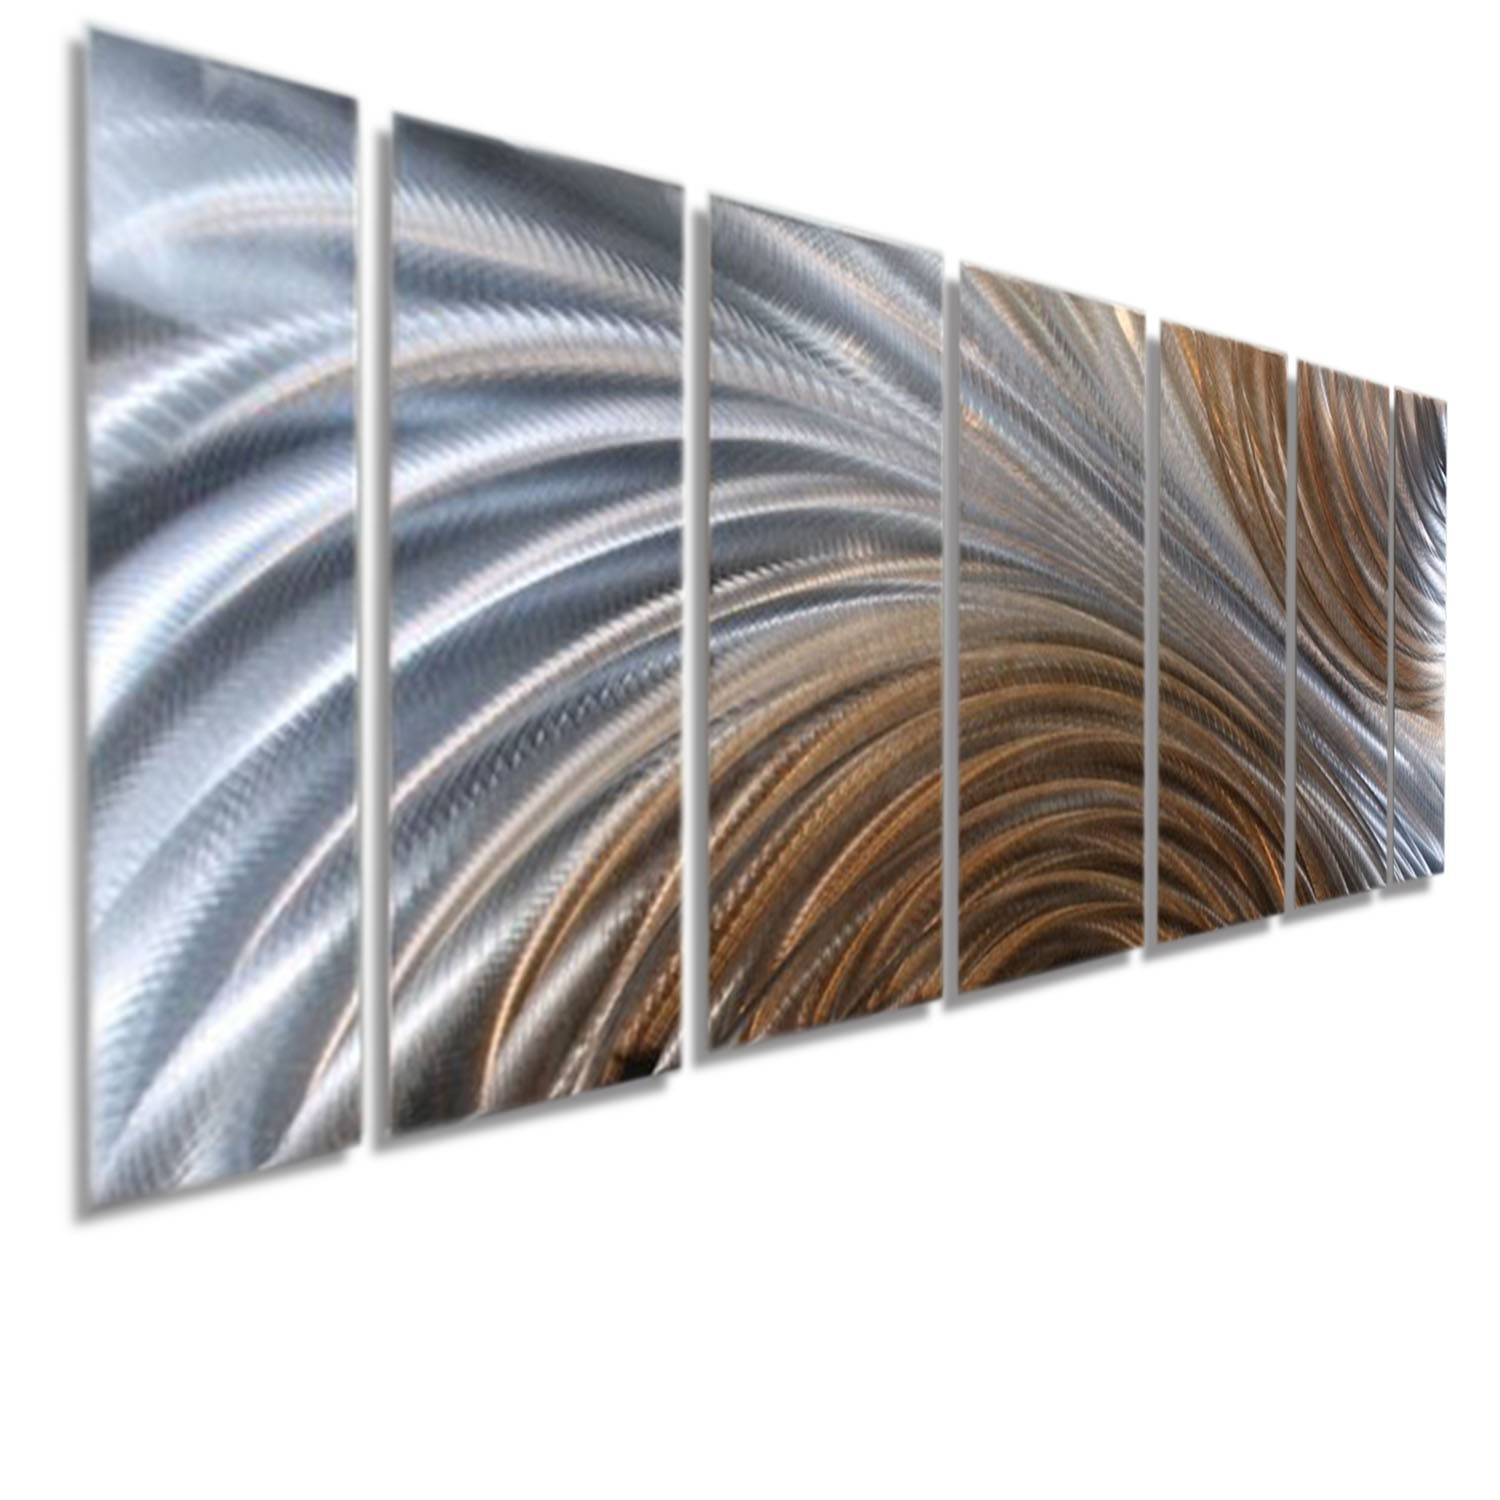 Amber Ascension Silver & Copper Abstract Metal Wall Artjon Pertaining To 2017 Metal Wall Art (View 28 of 30)